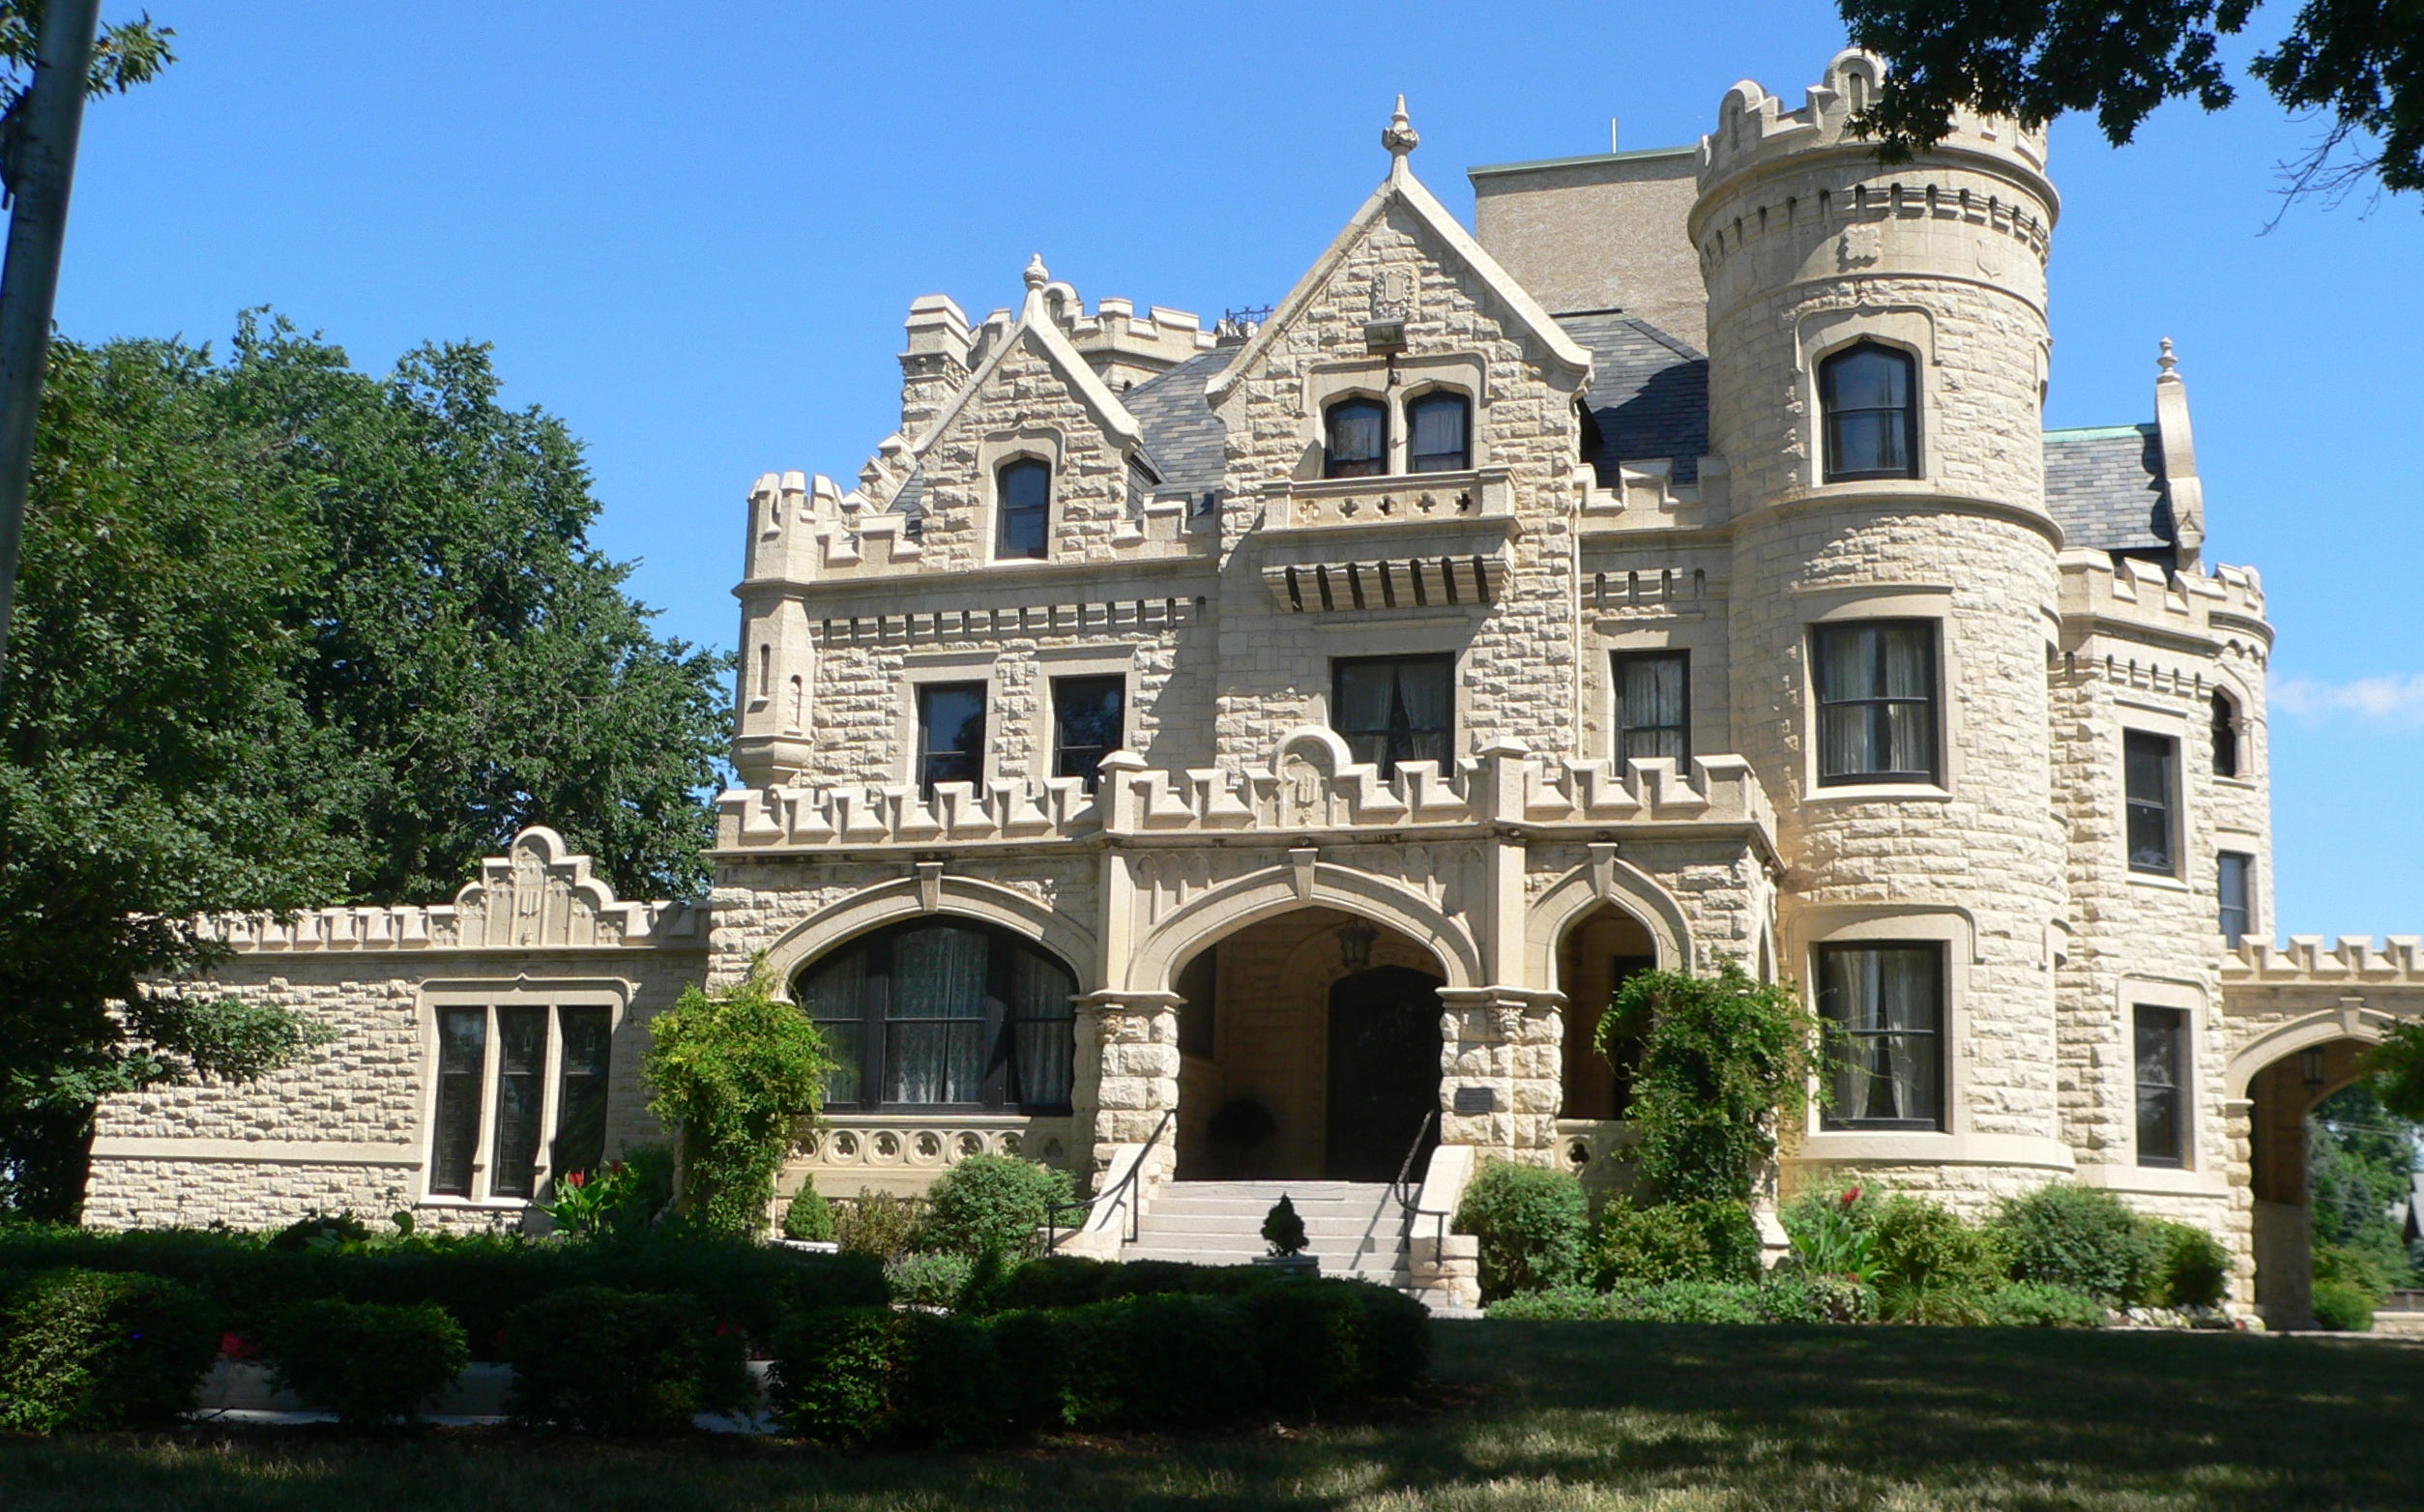 Joslyn Castle from the front